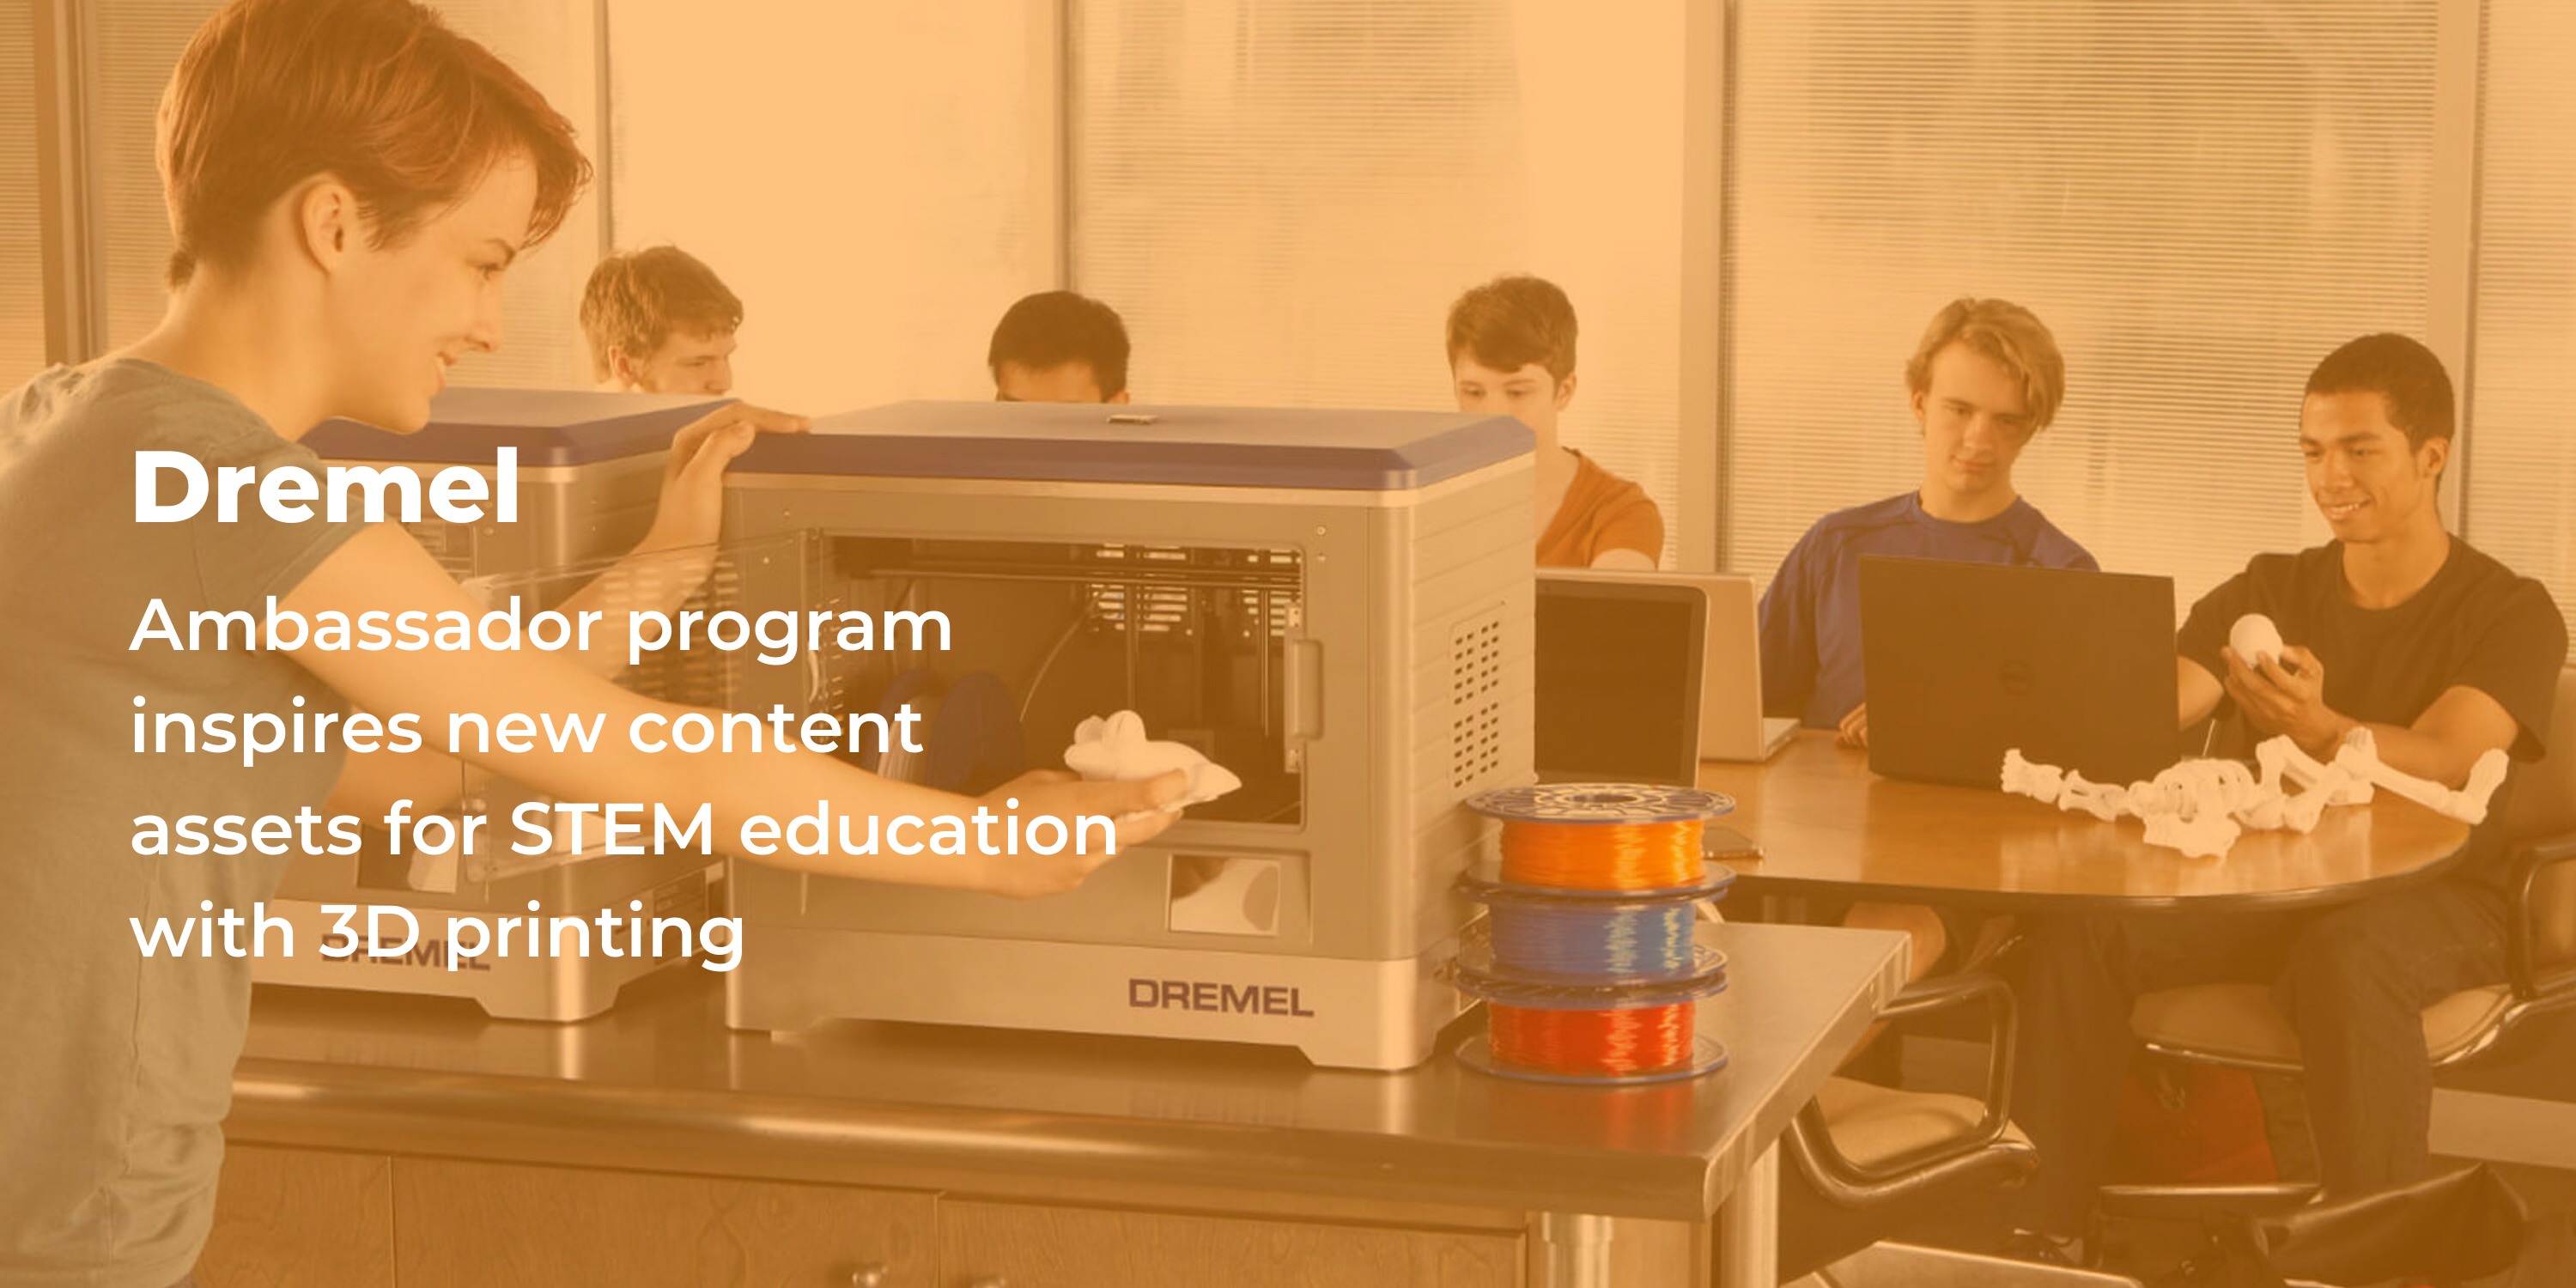 Dremel's ambassador program inspired new content assets for STEM education with 3D printing